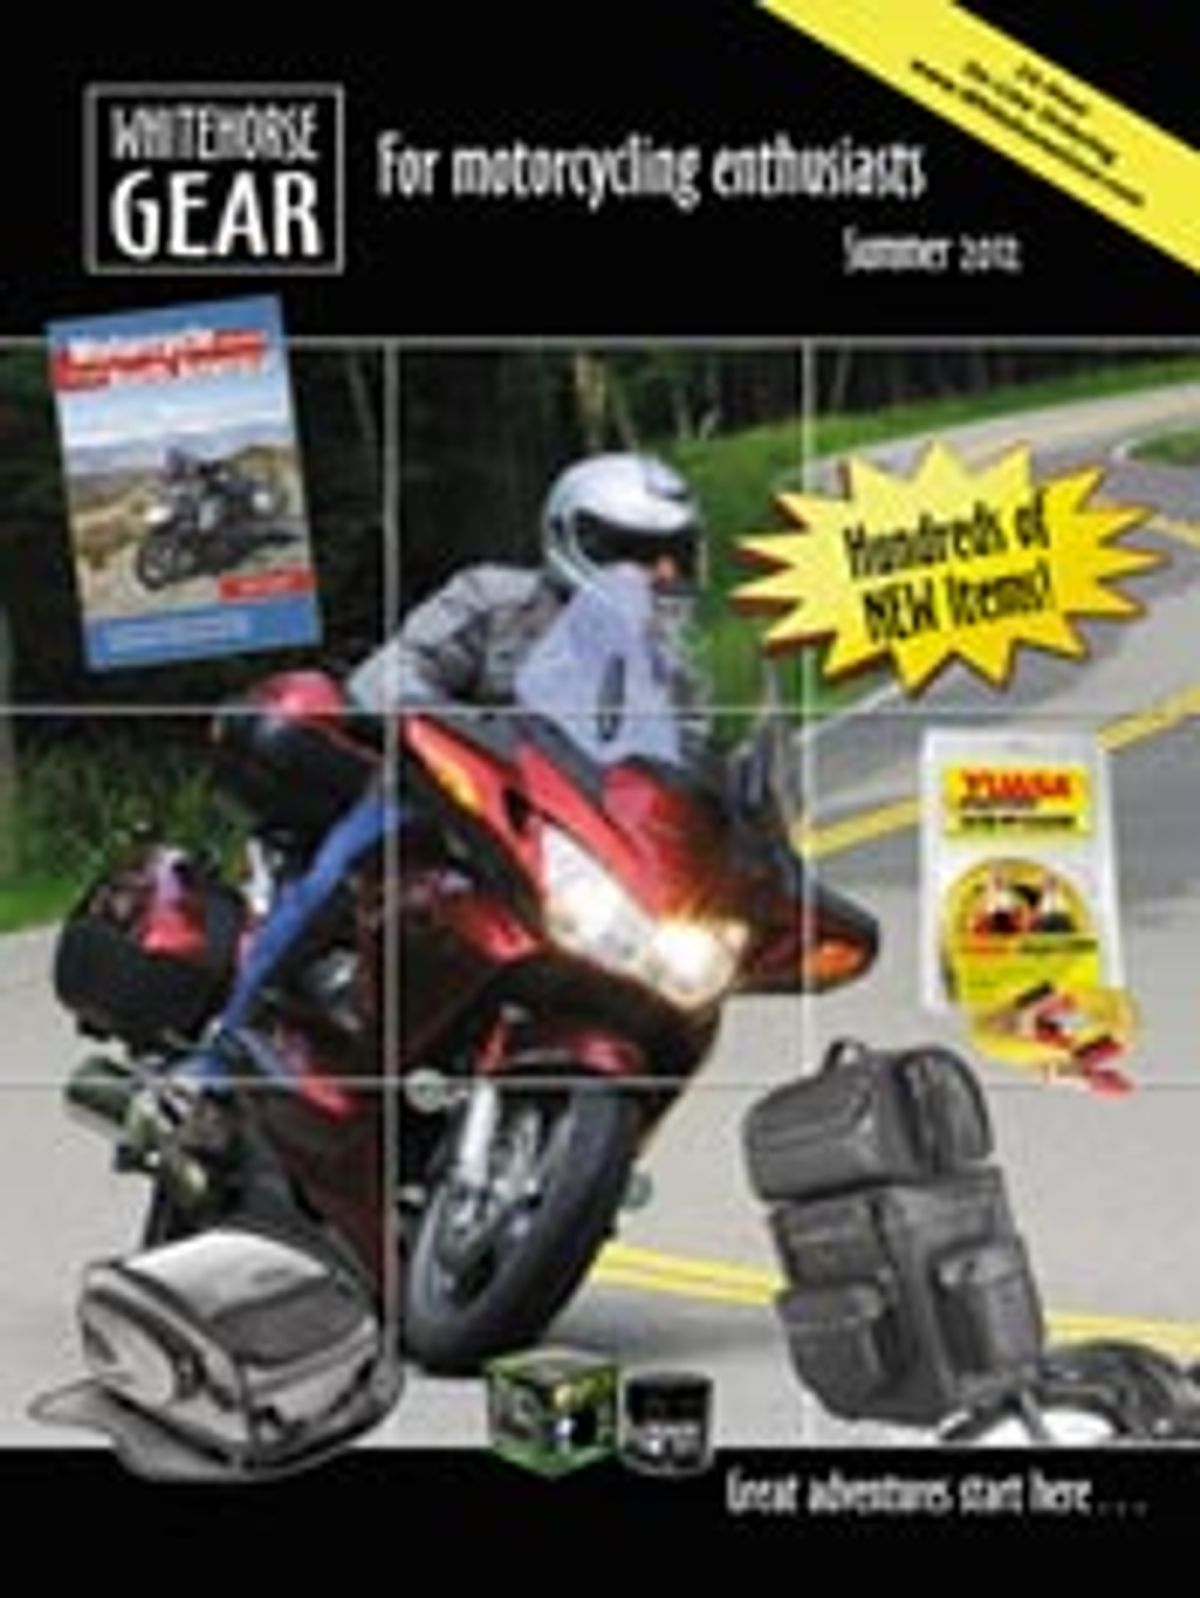 Motorcycle Gear From Whitehorse Gear Motorcycle Store